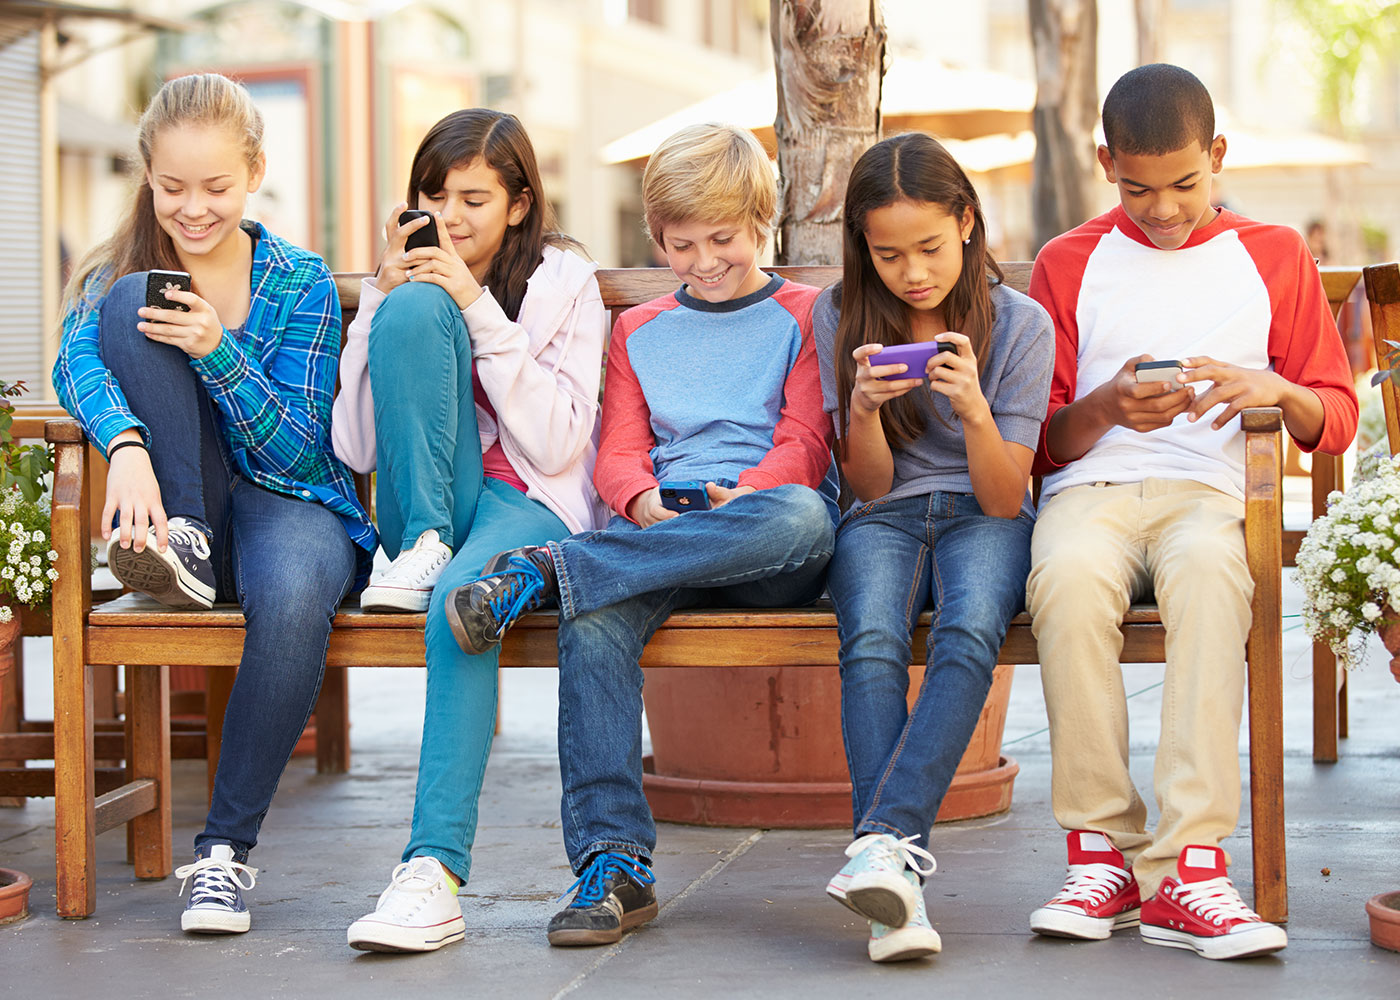 Children Sitting In Mall Using Mobile Phones